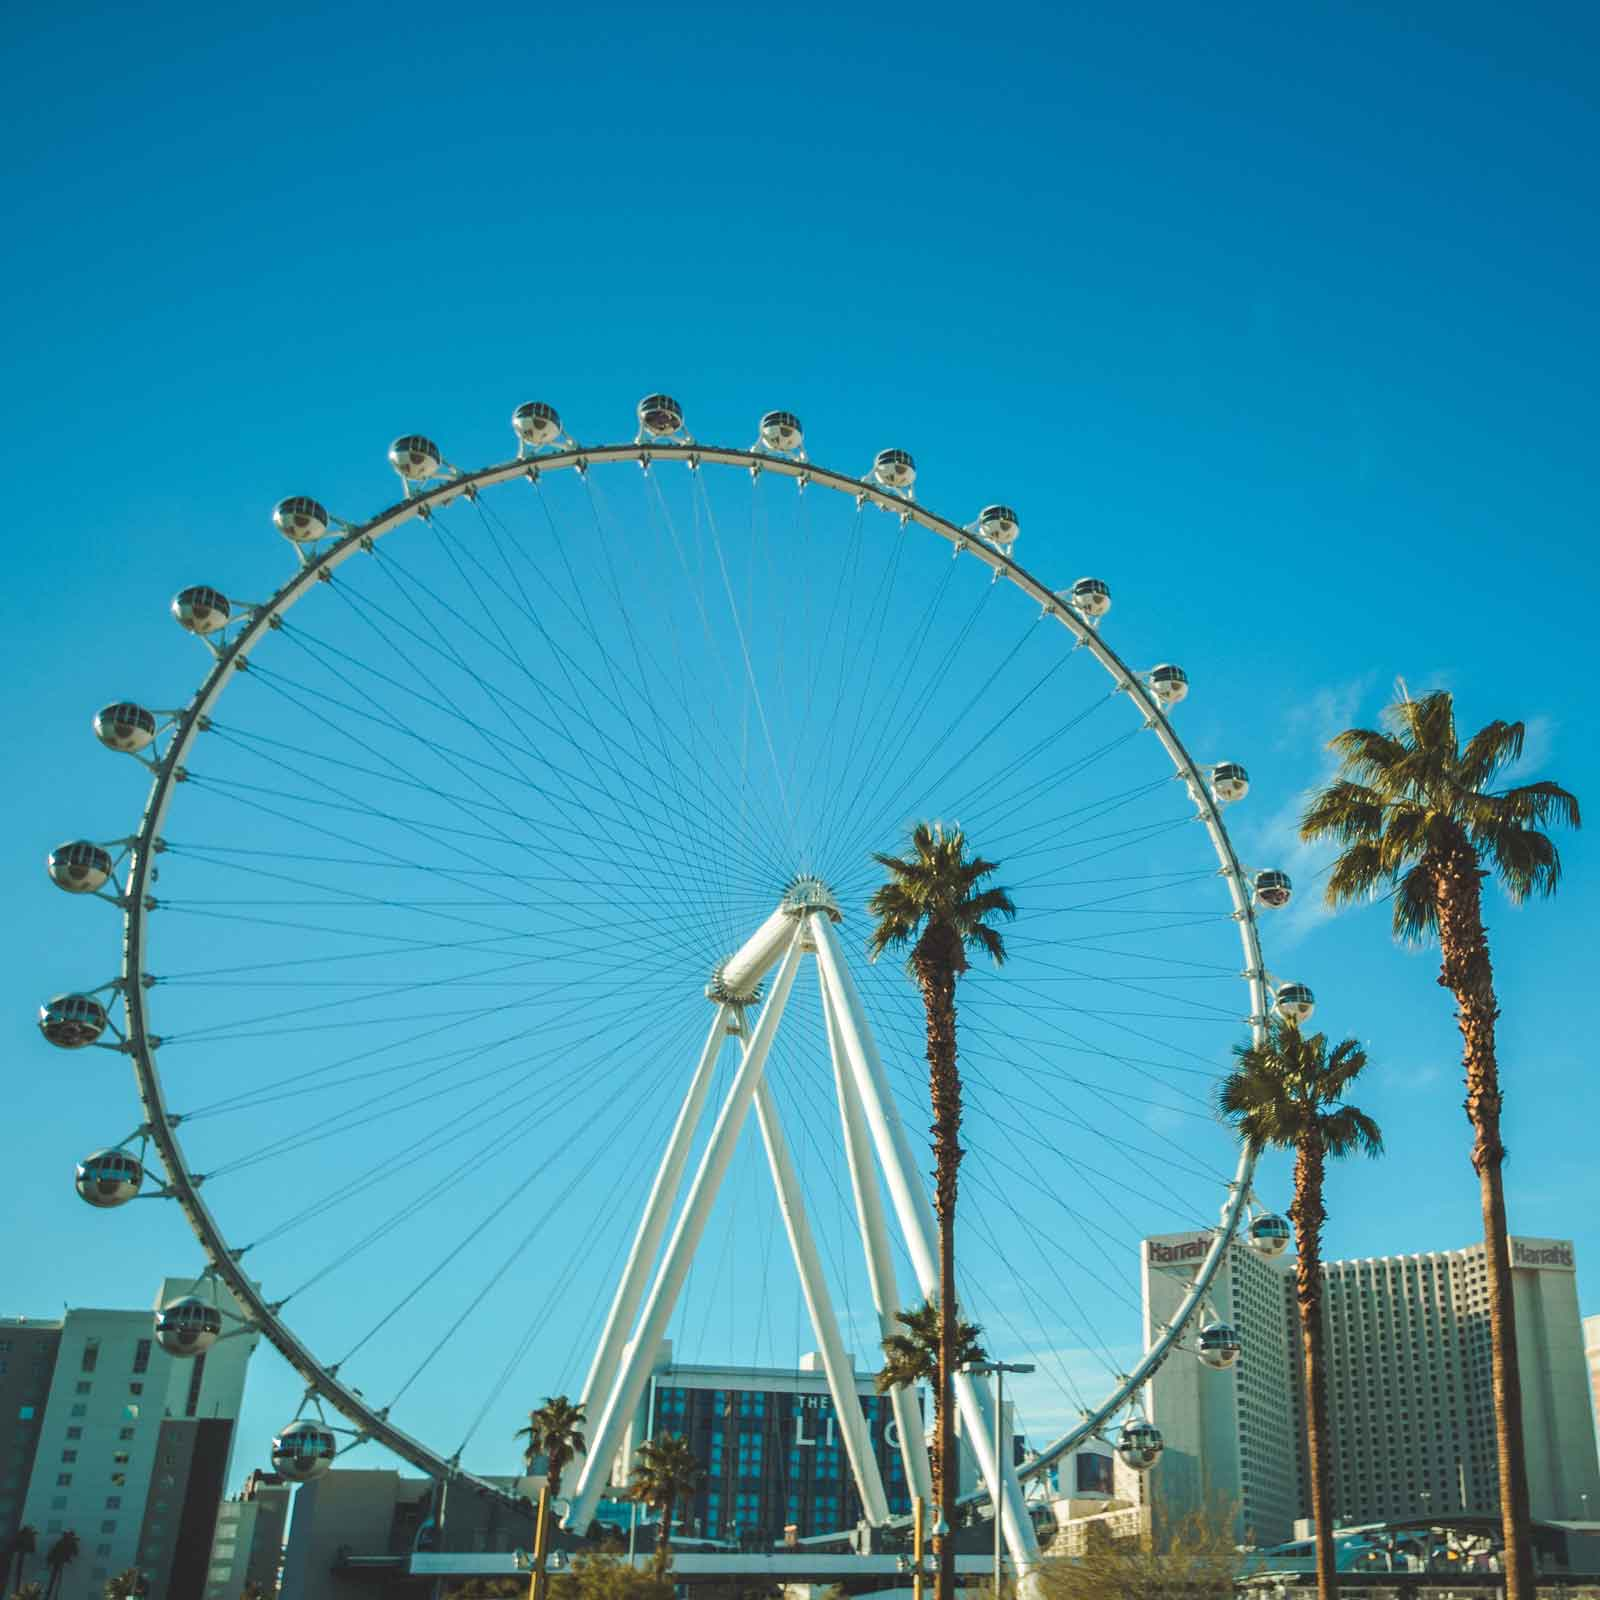 Photo of the High Roller ferris wheel in Las Vegas during the day with hotels in the background.